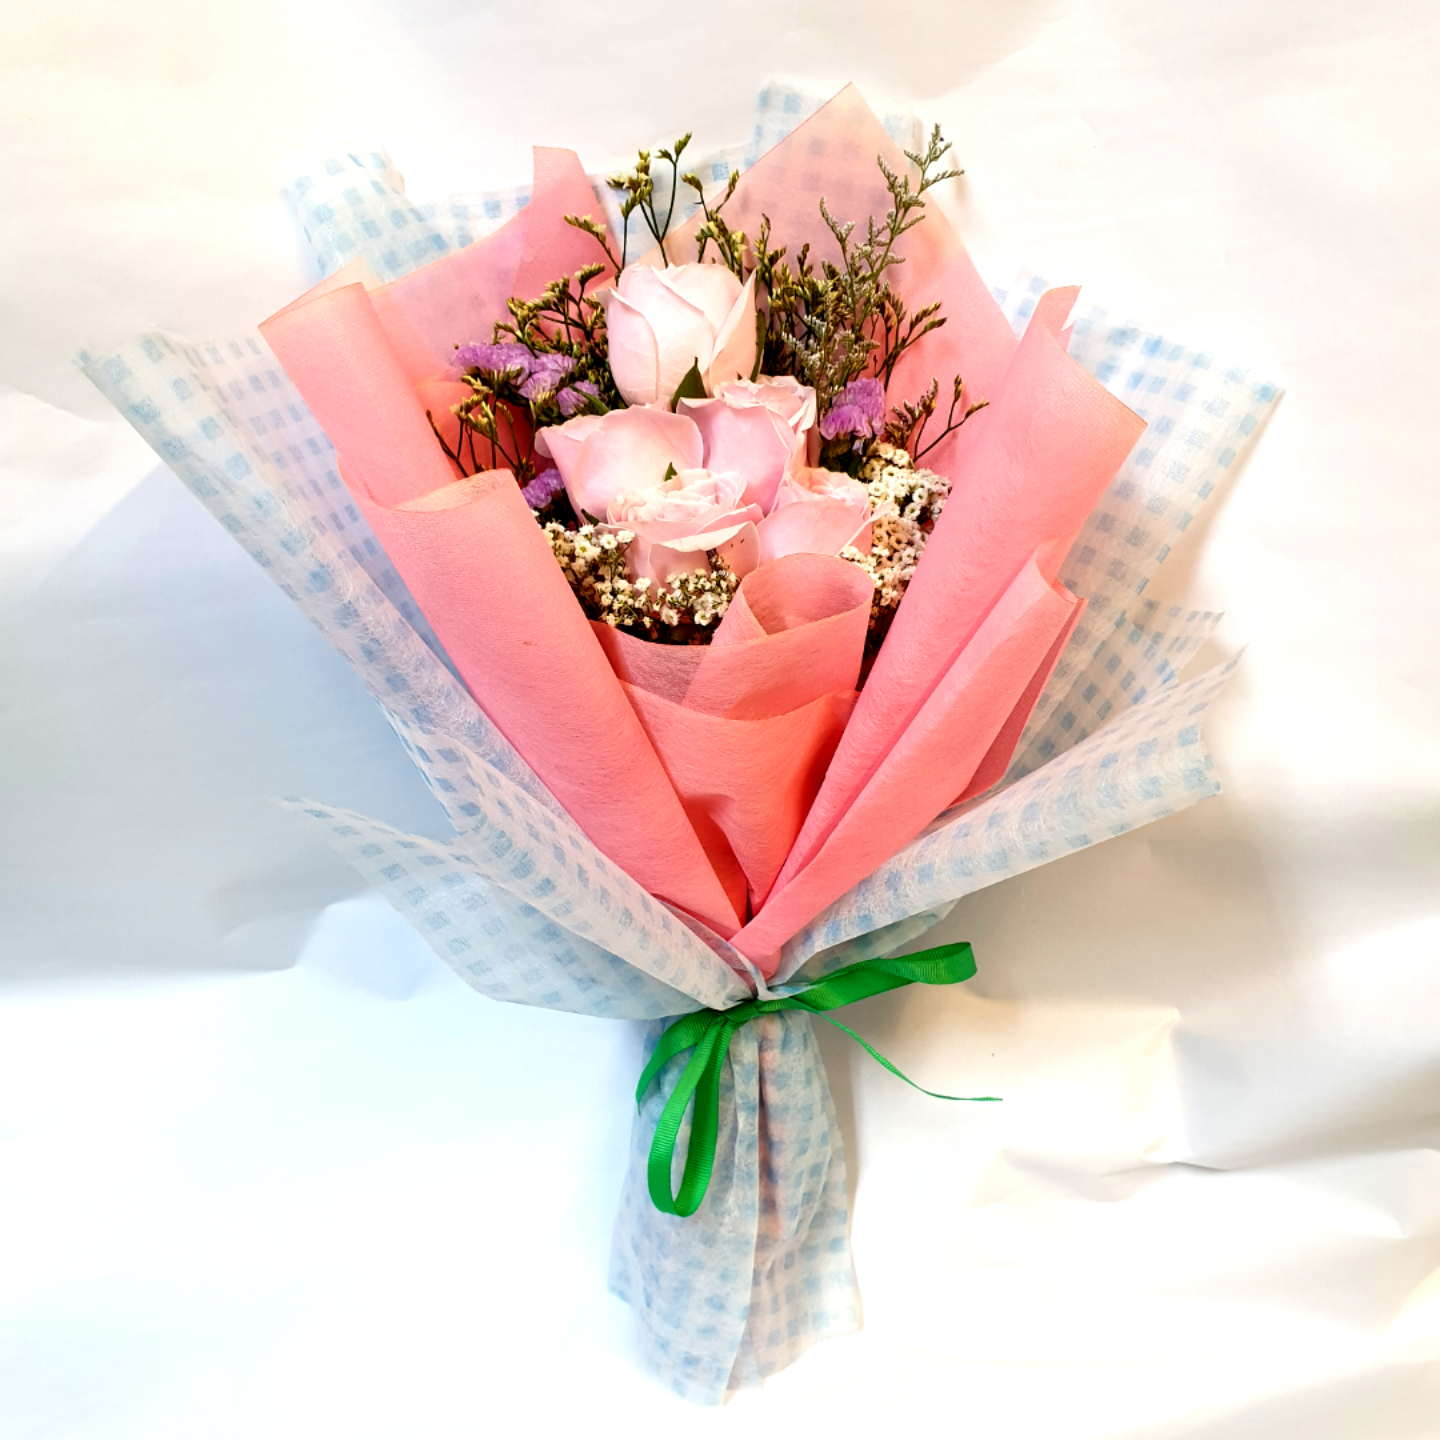 (New) Vflowers ( 9 Red or Pink Roses )